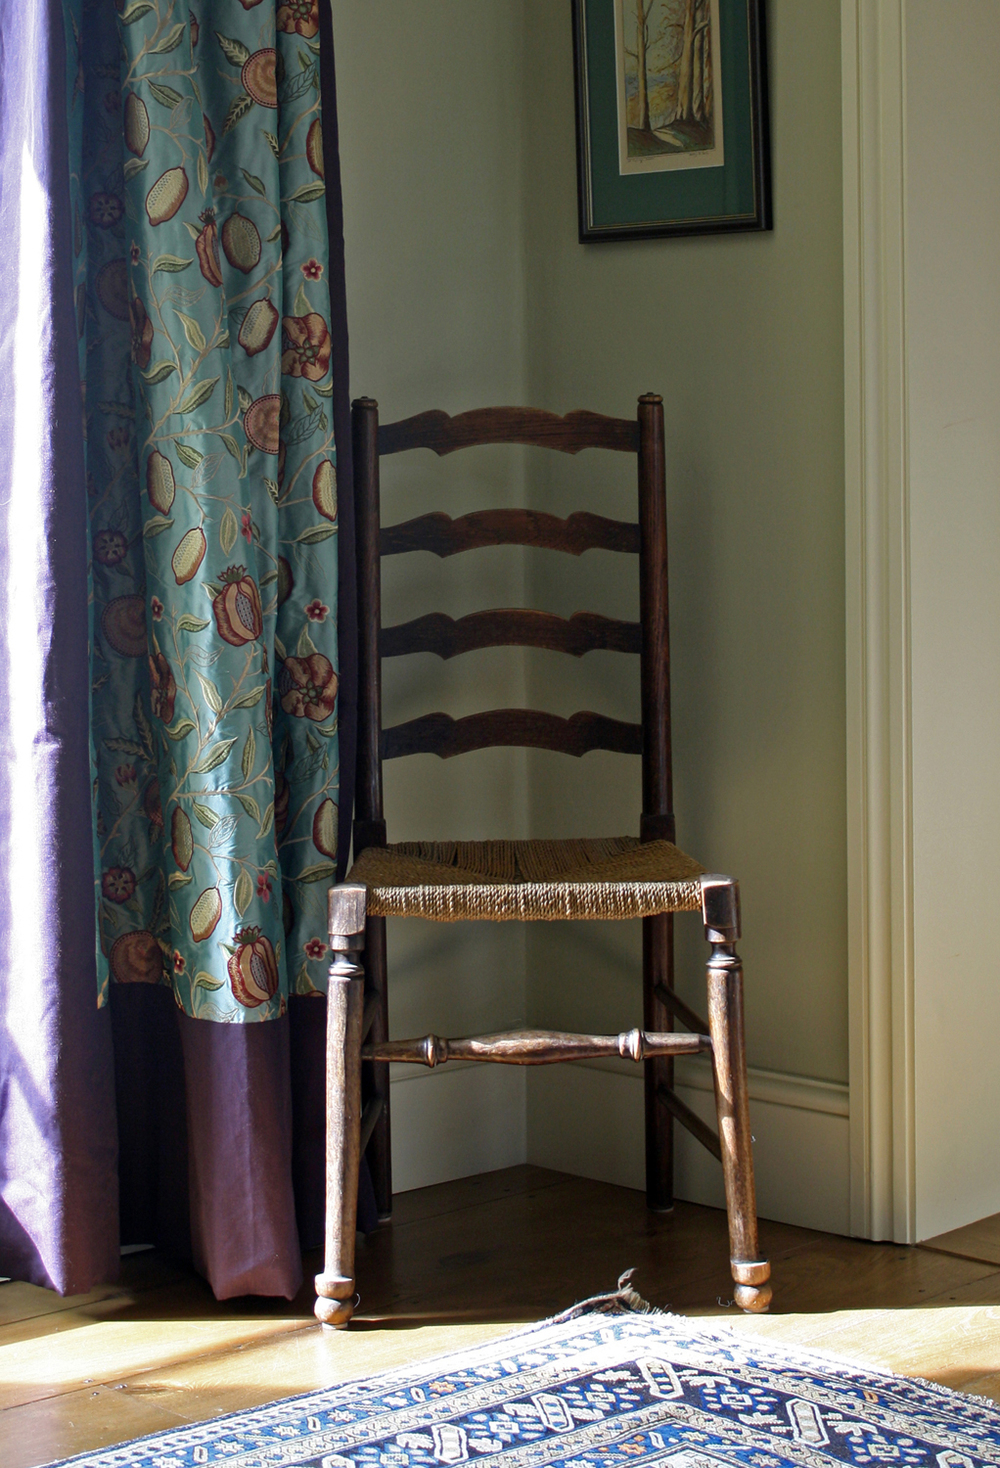 Lewes Curtain and chair crop_LR.jpg